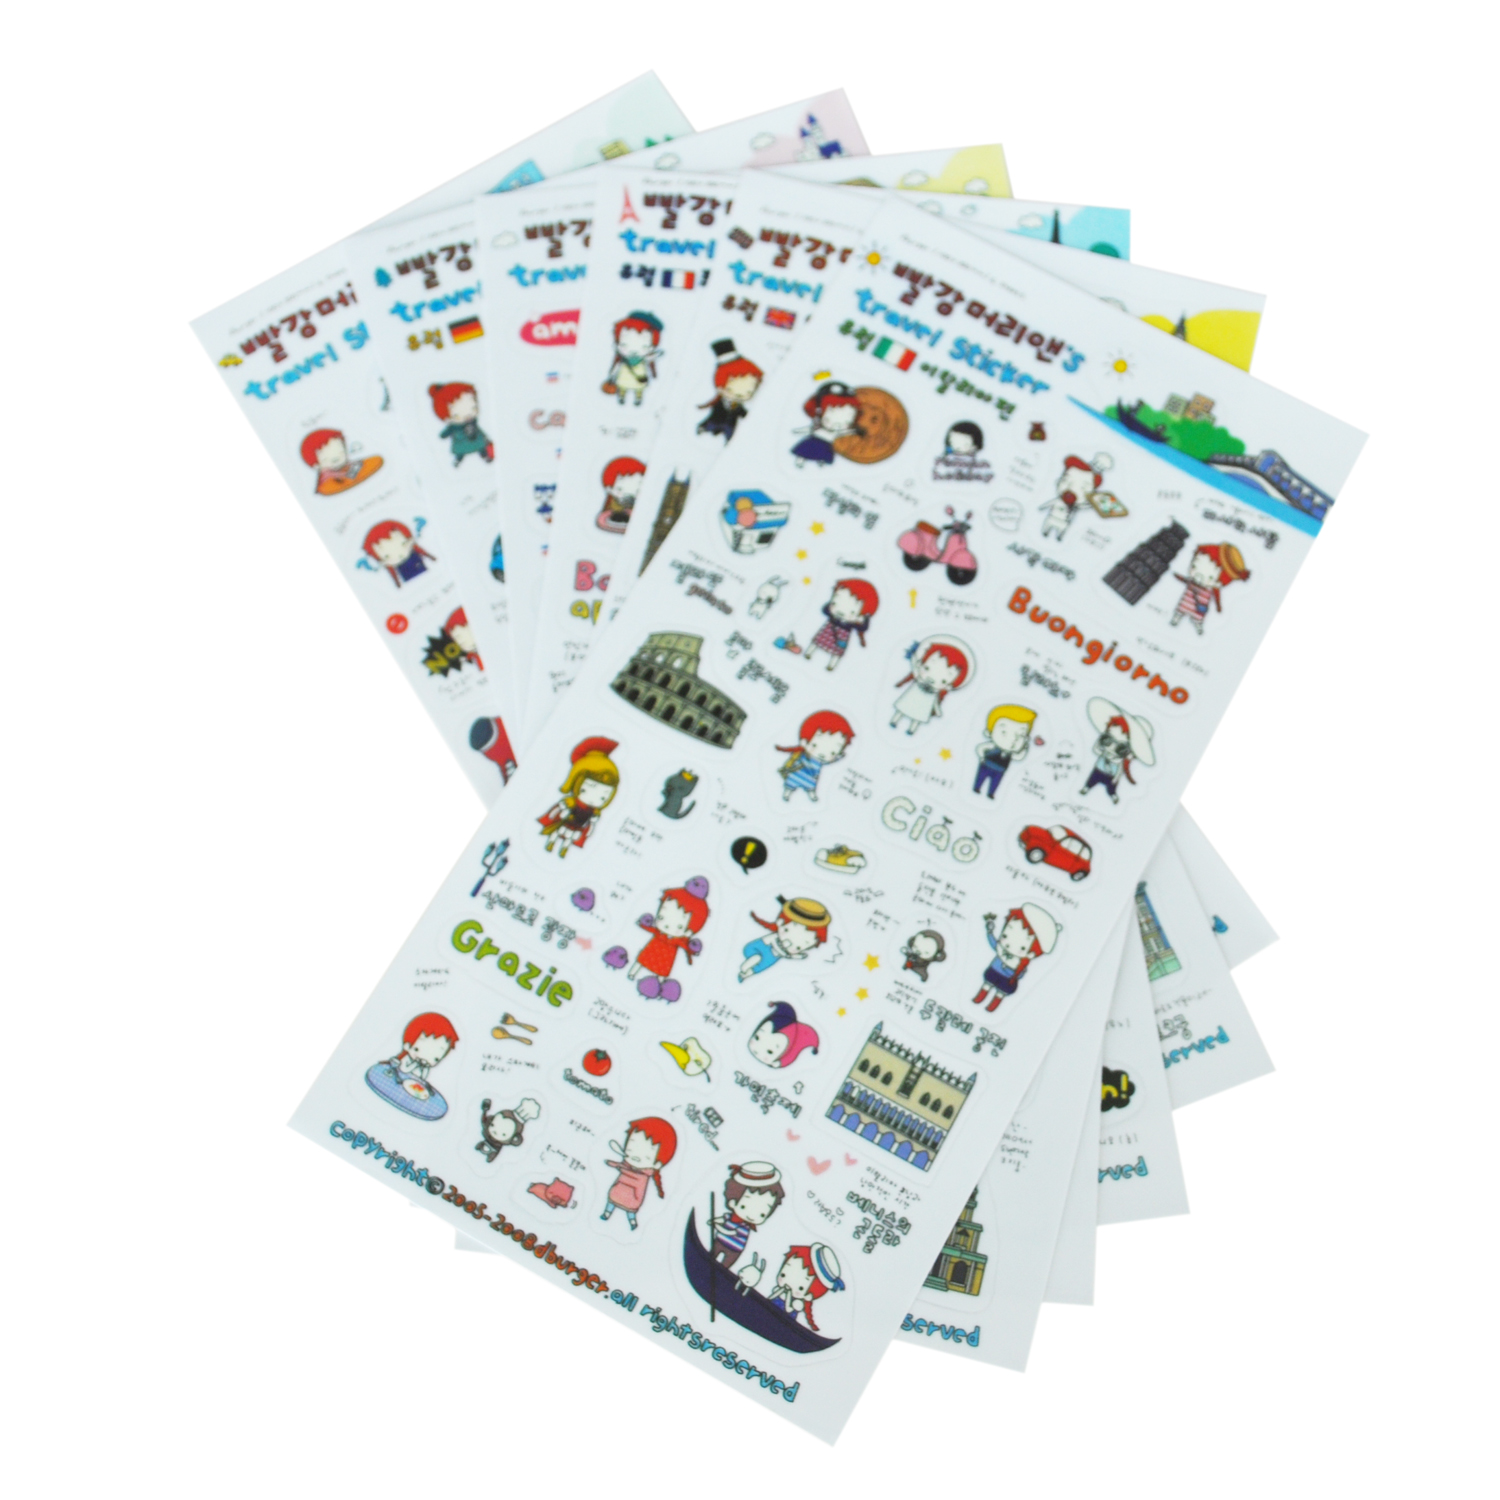 How to scrapbook travel - Sosw 6 Sheets Cute Red Hair Girl Travel Diary Scrapbook Decoration Photo Stickers China